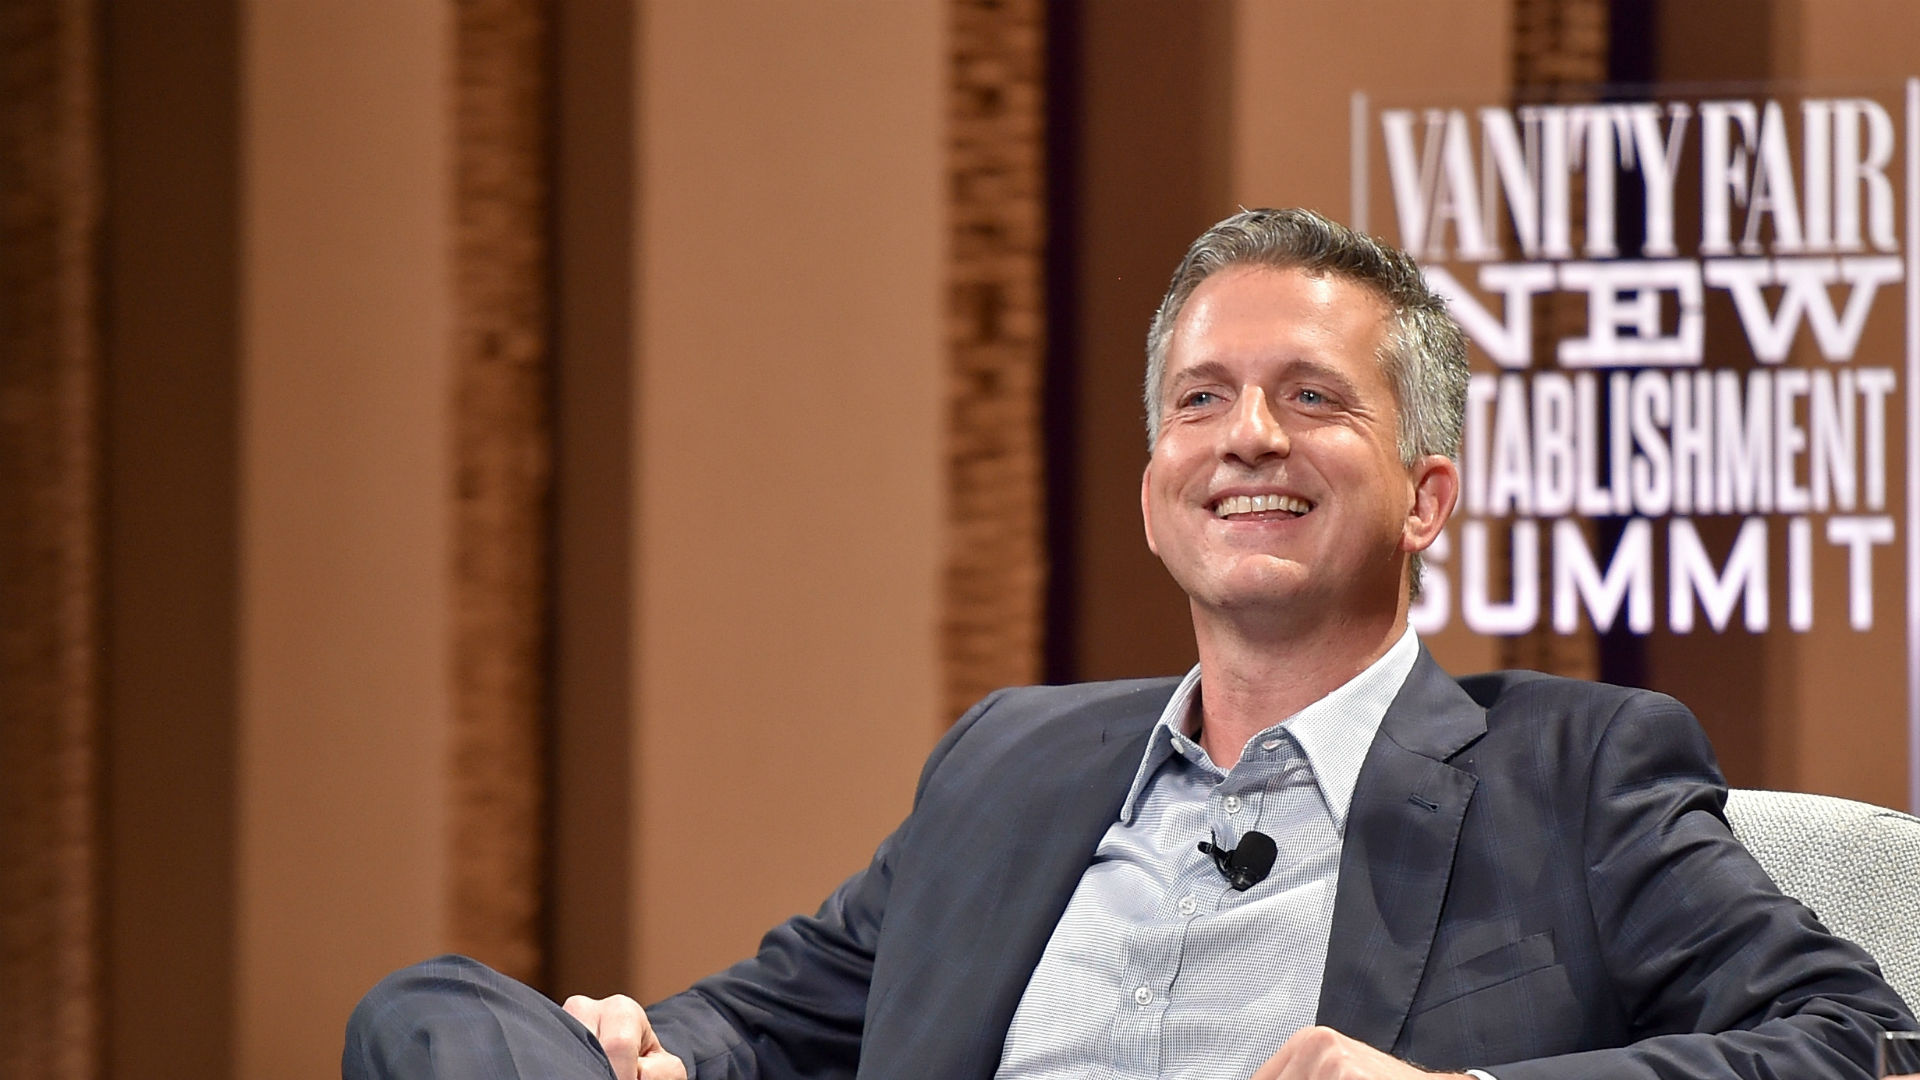 Game over: Top 10 reasons why Bill Simmons flopped on TV